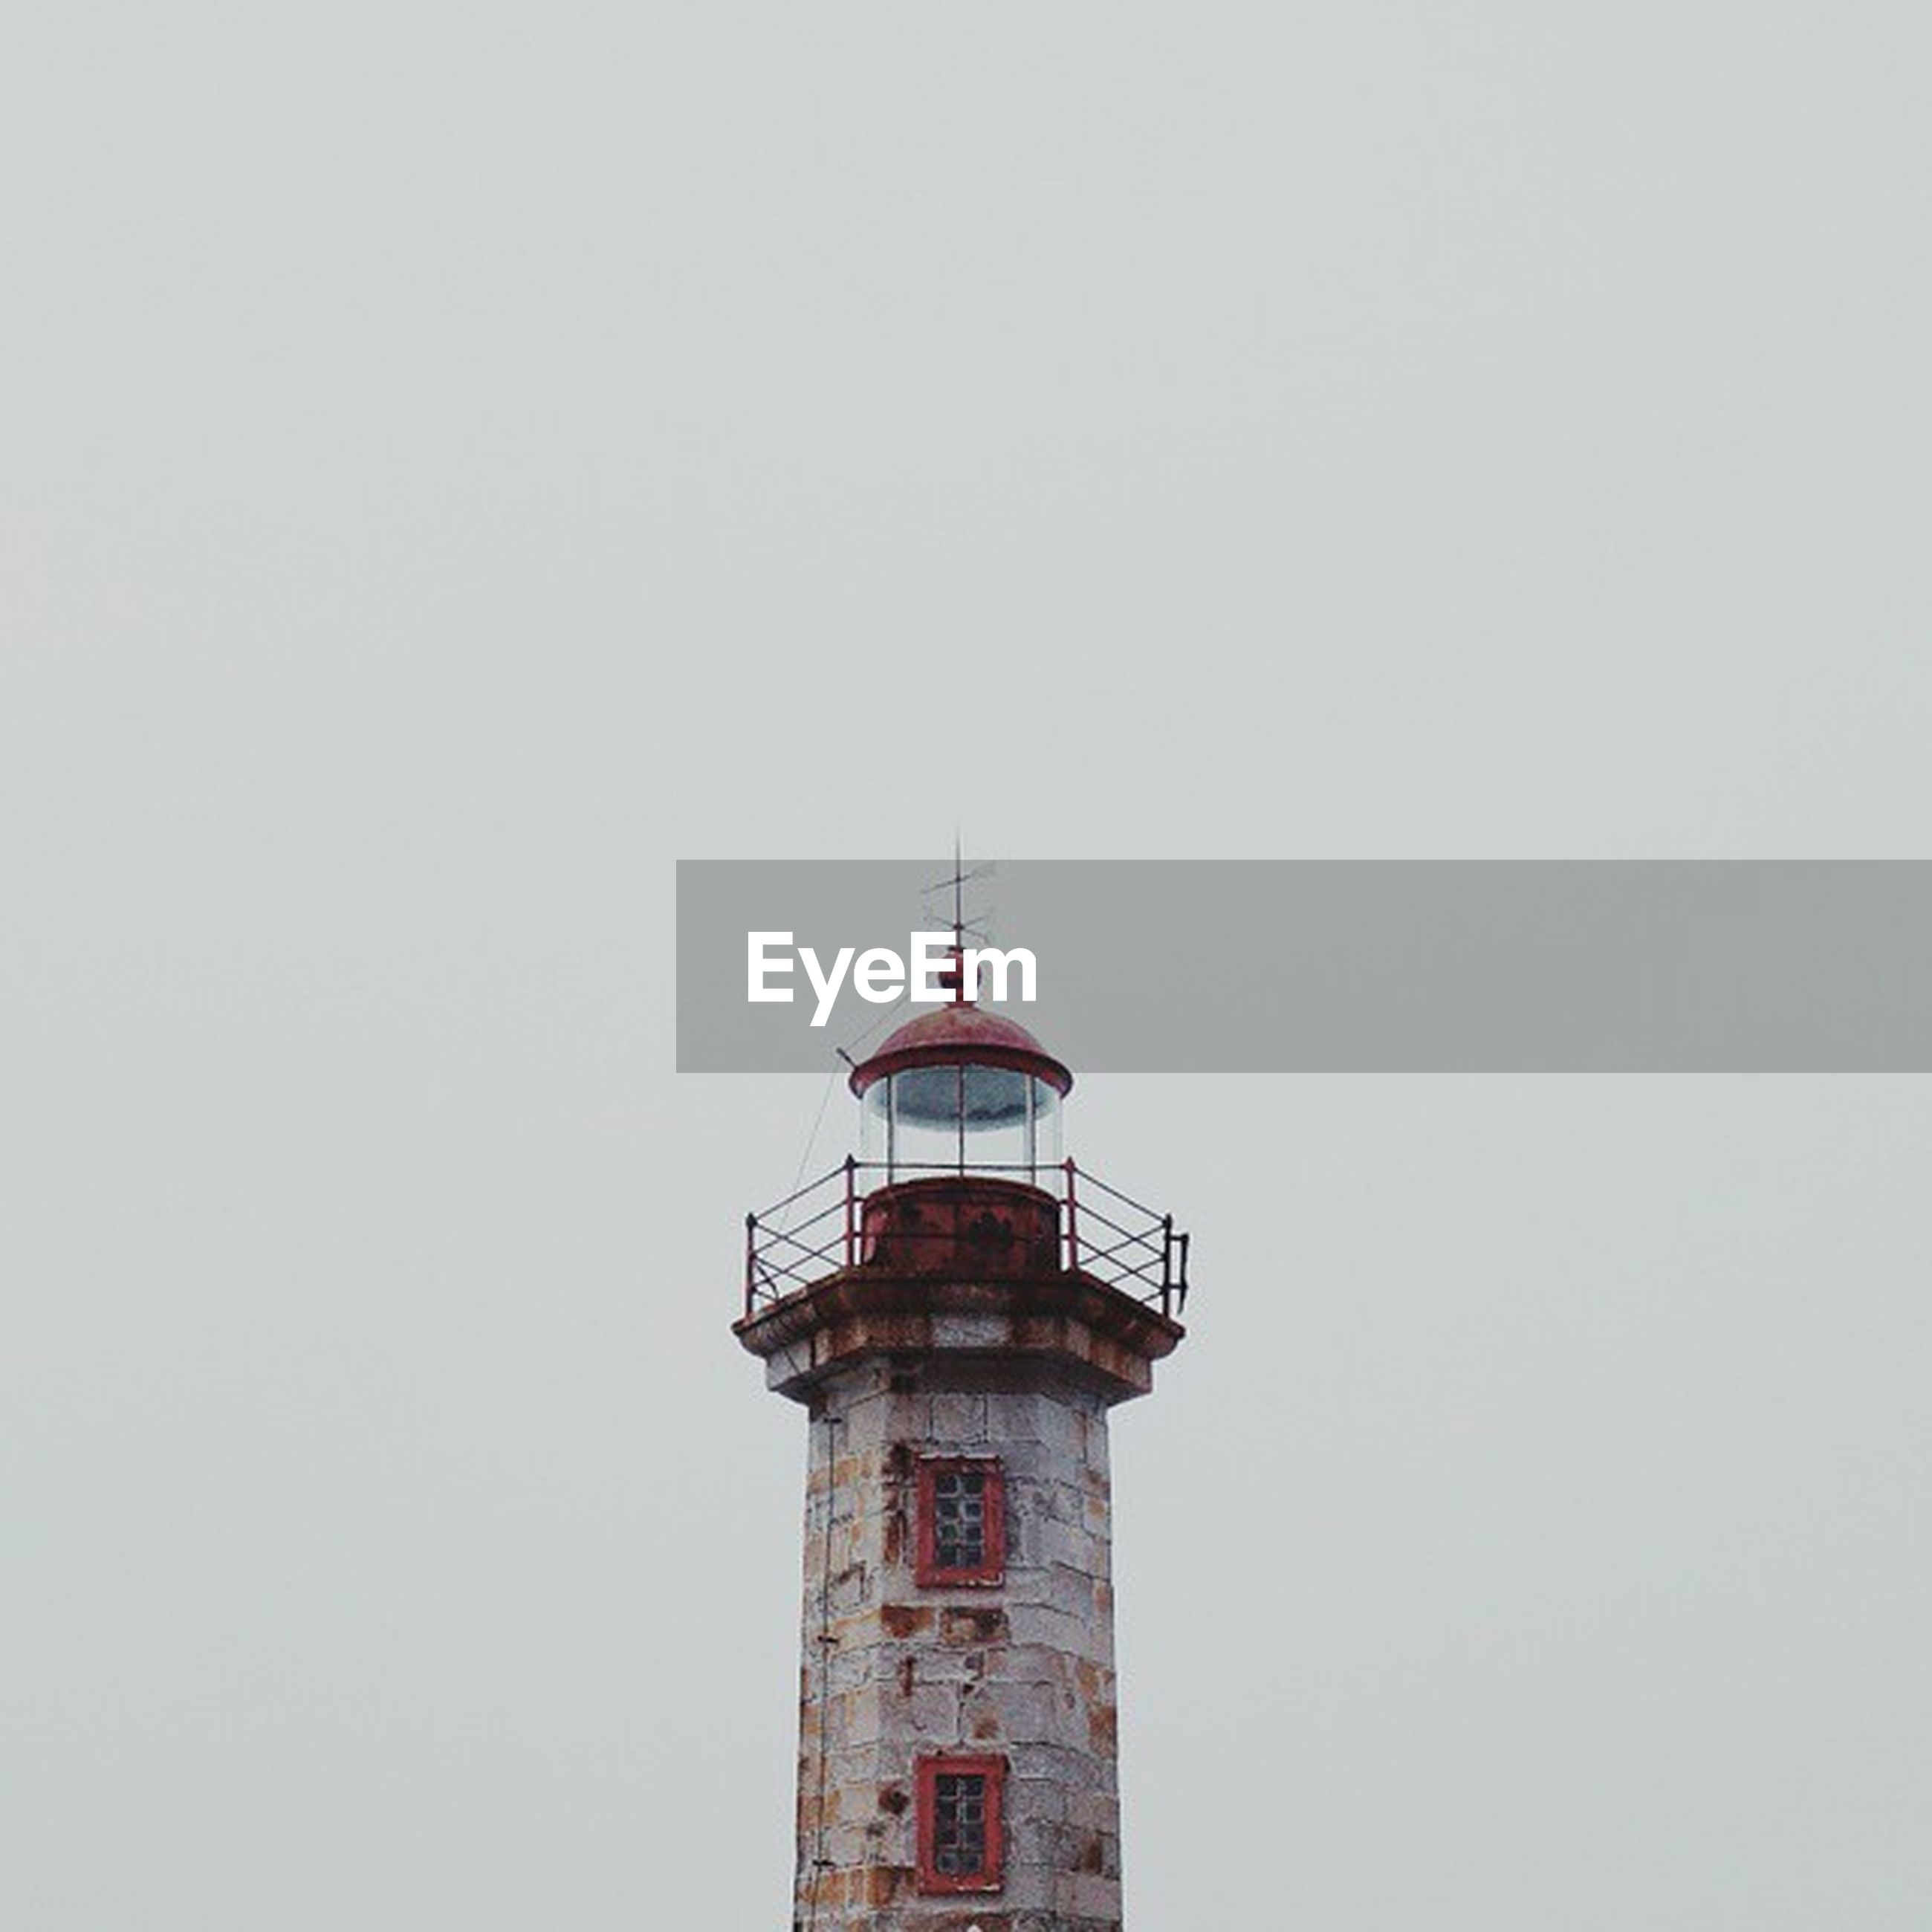 architecture, copy space, built structure, building exterior, clear sky, low angle view, lighthouse, guidance, tower, direction, red, high section, safety, protection, day, outdoors, no people, security, building, tall - high